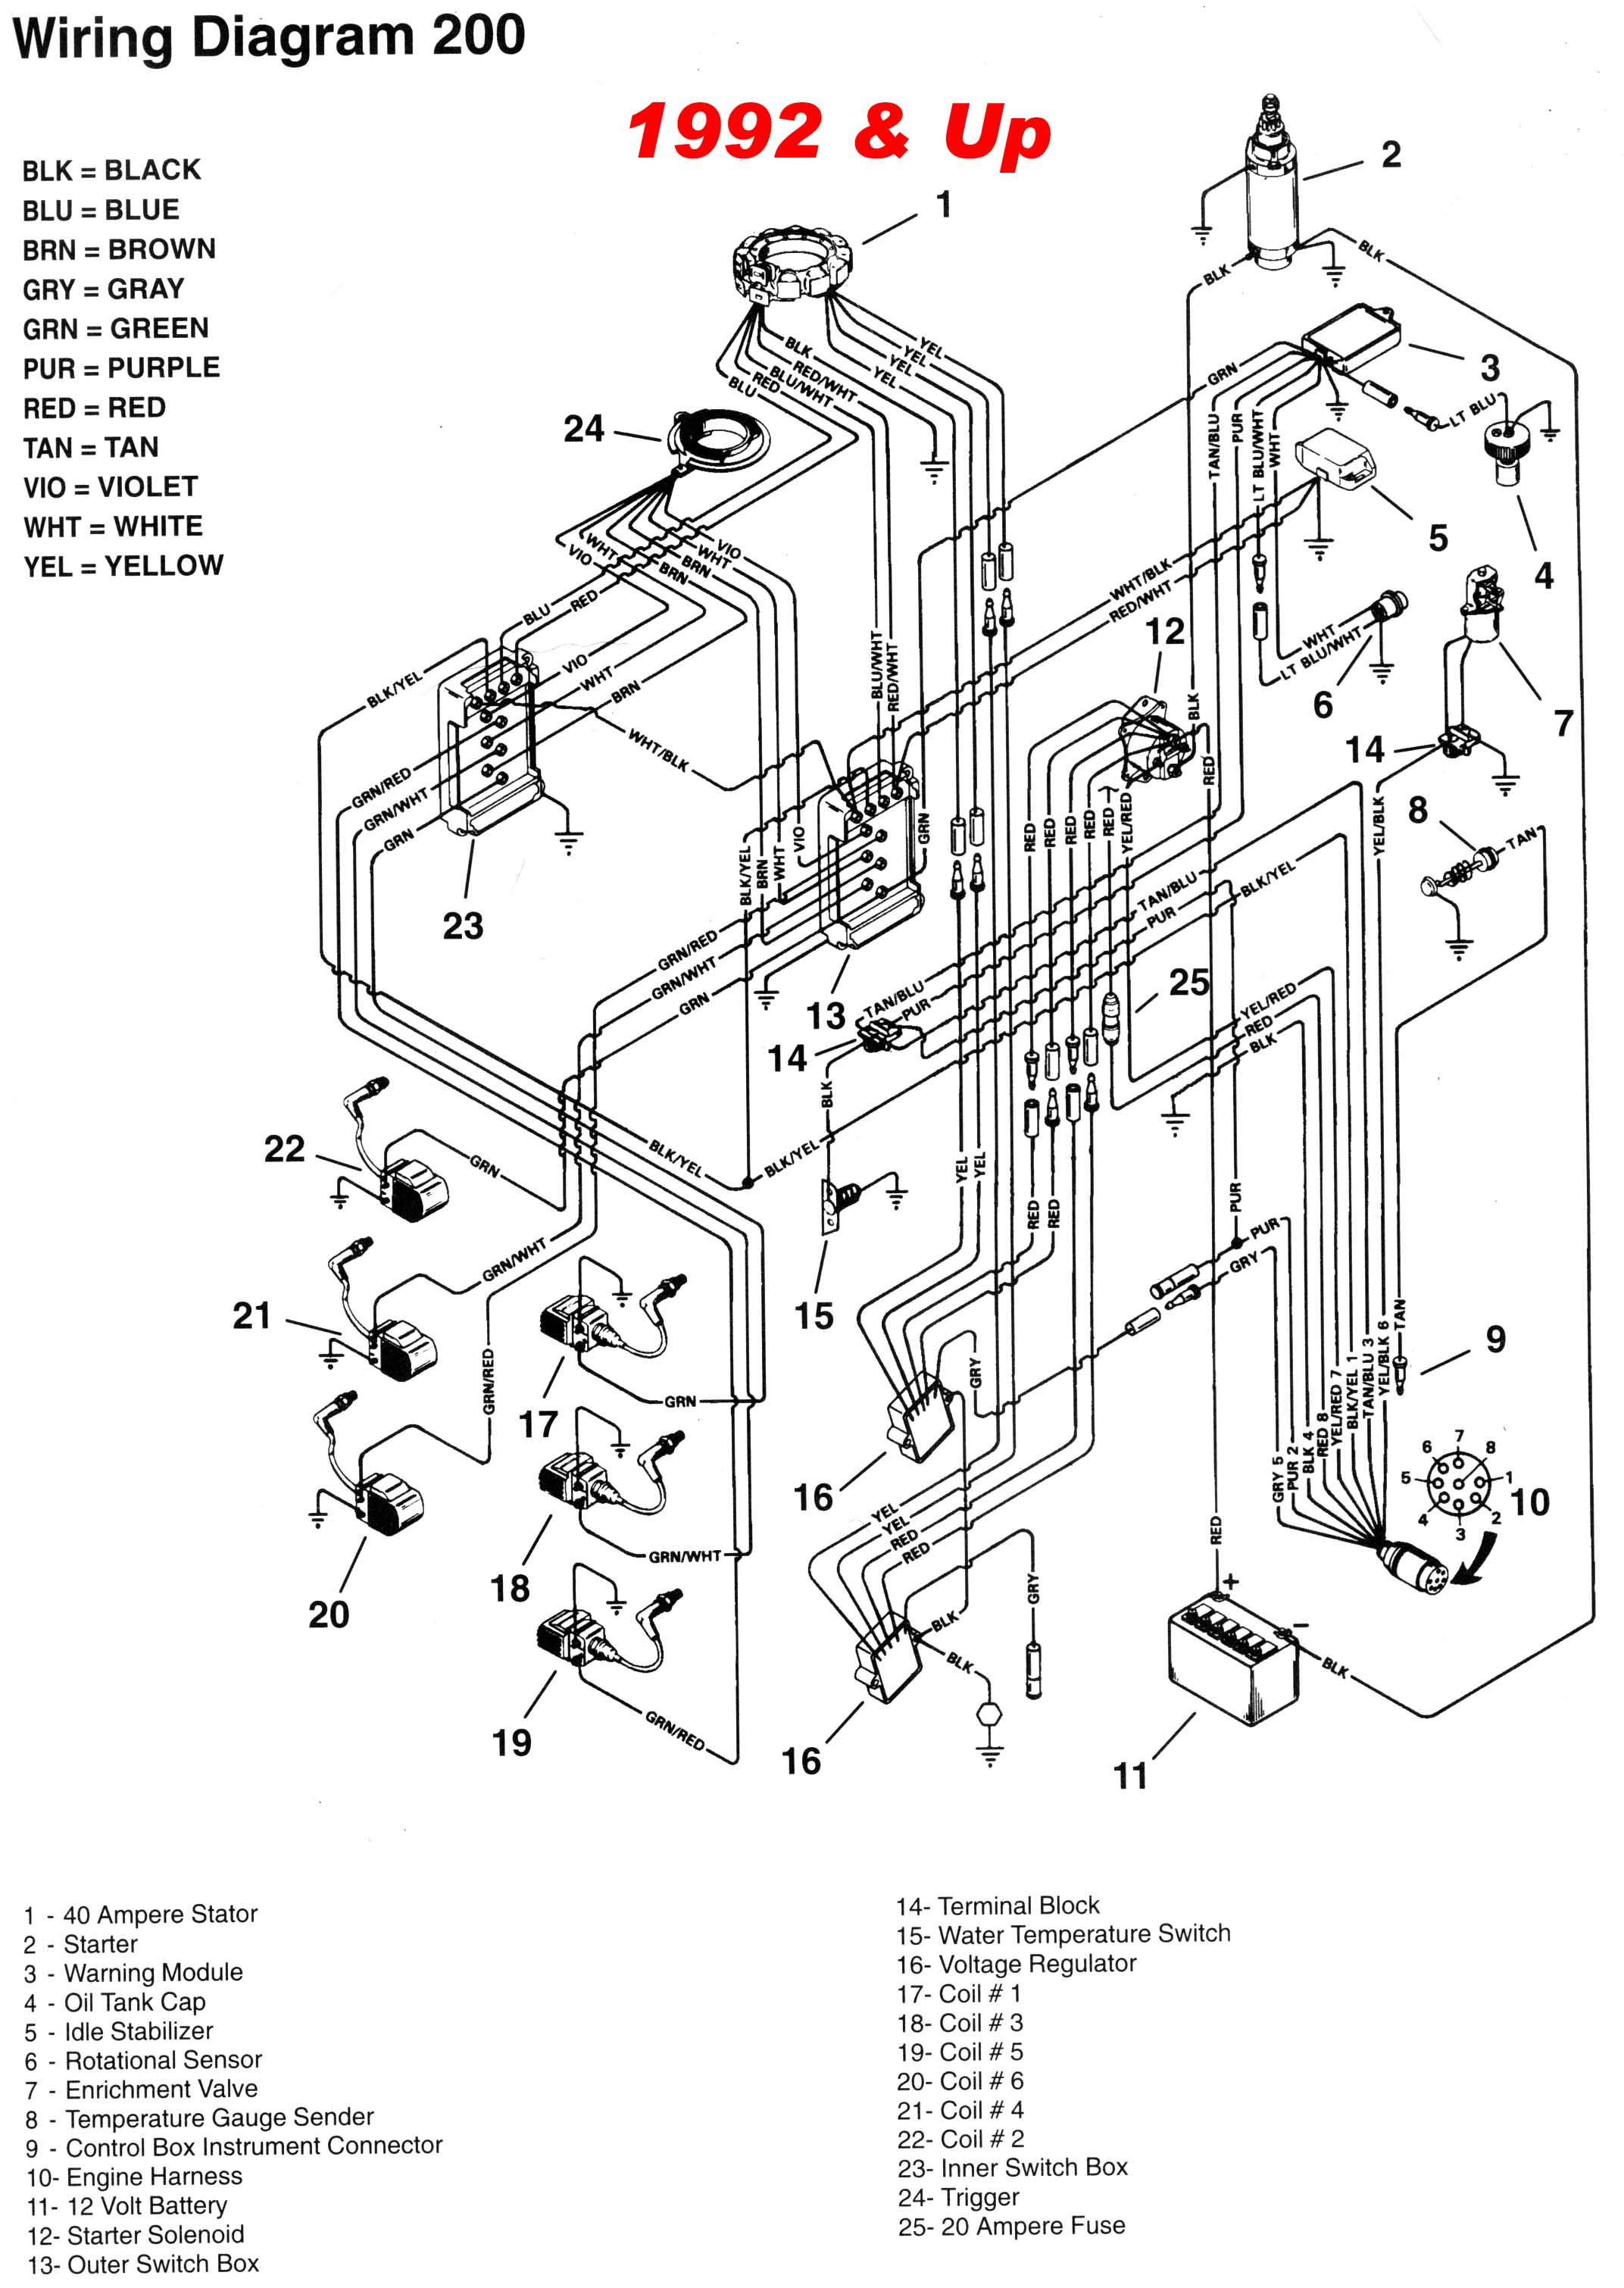 1991 Mercury Capri Fuse Box Diagram Not Lossing Wiring 92 Bayliner Boat Ignition Switch 1997 Mountaineer 2001